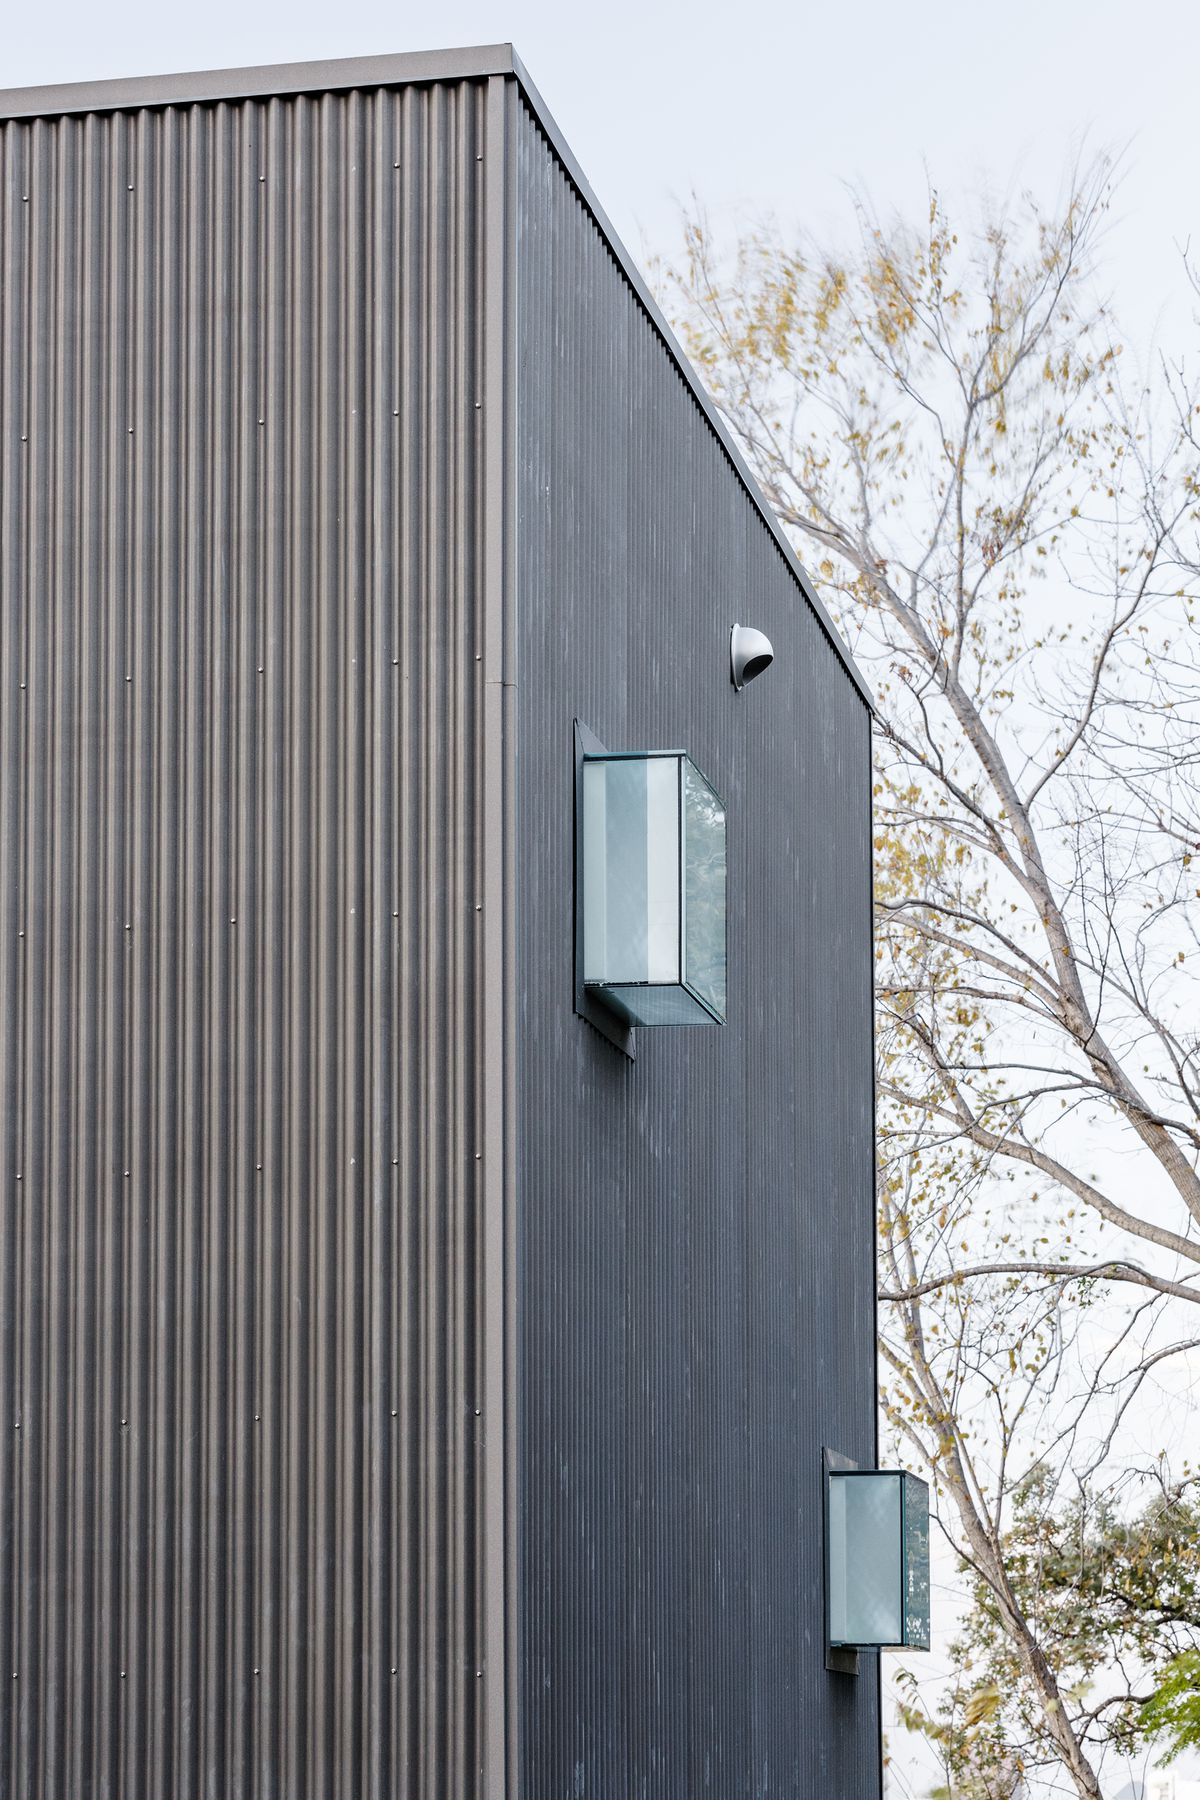 There are a series of small windows that, from the outside, look like glass boxes attached to the house.